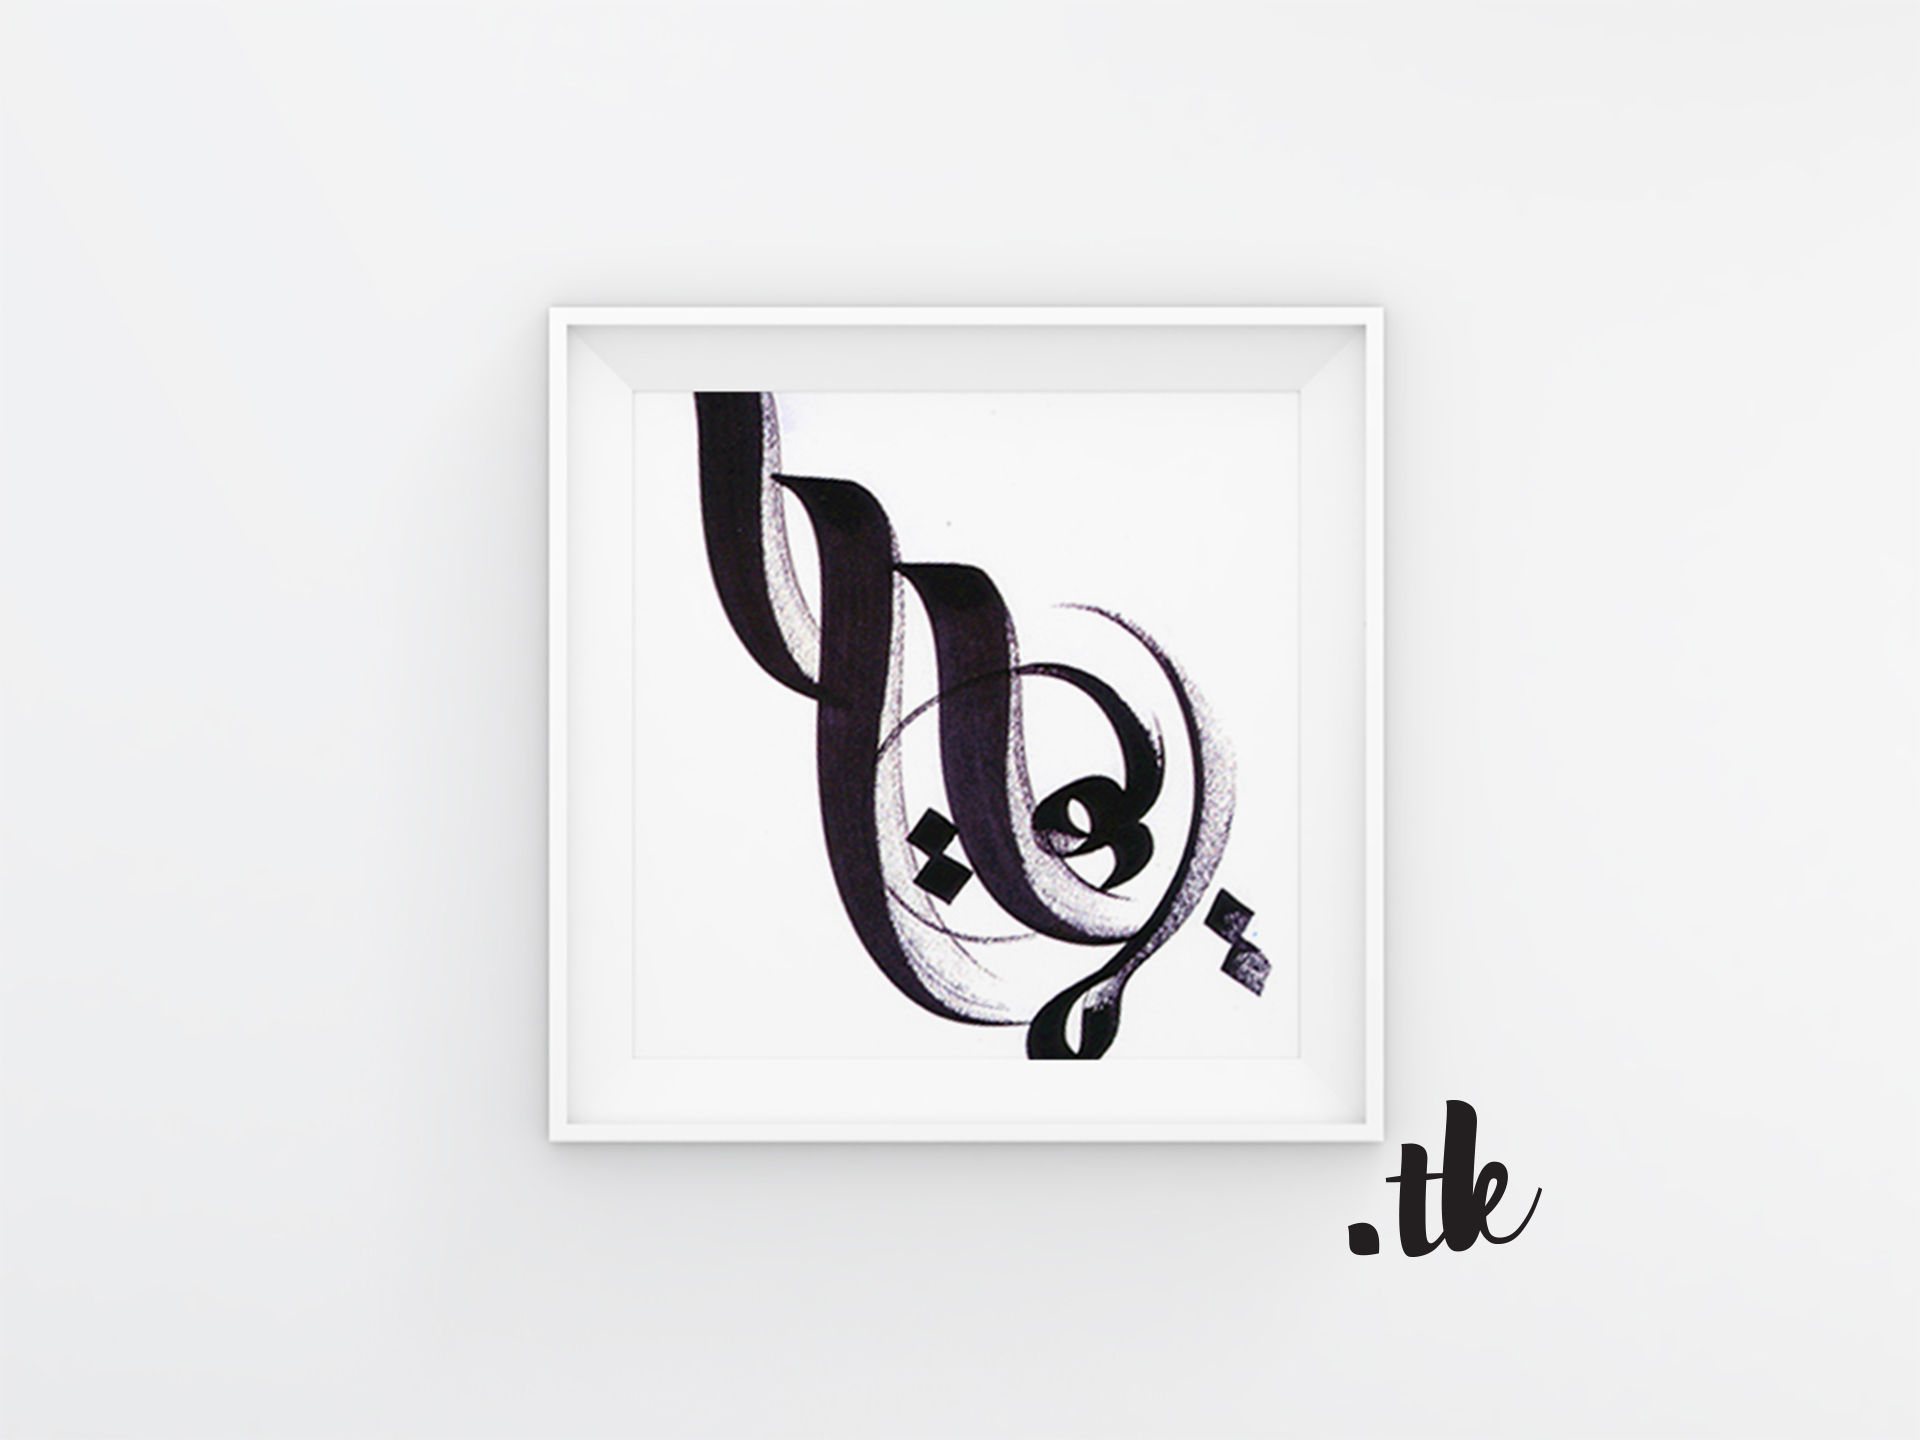 Mock Up of calligraphy in frame, black color, arabic calligraphy by Tanja Kaiser